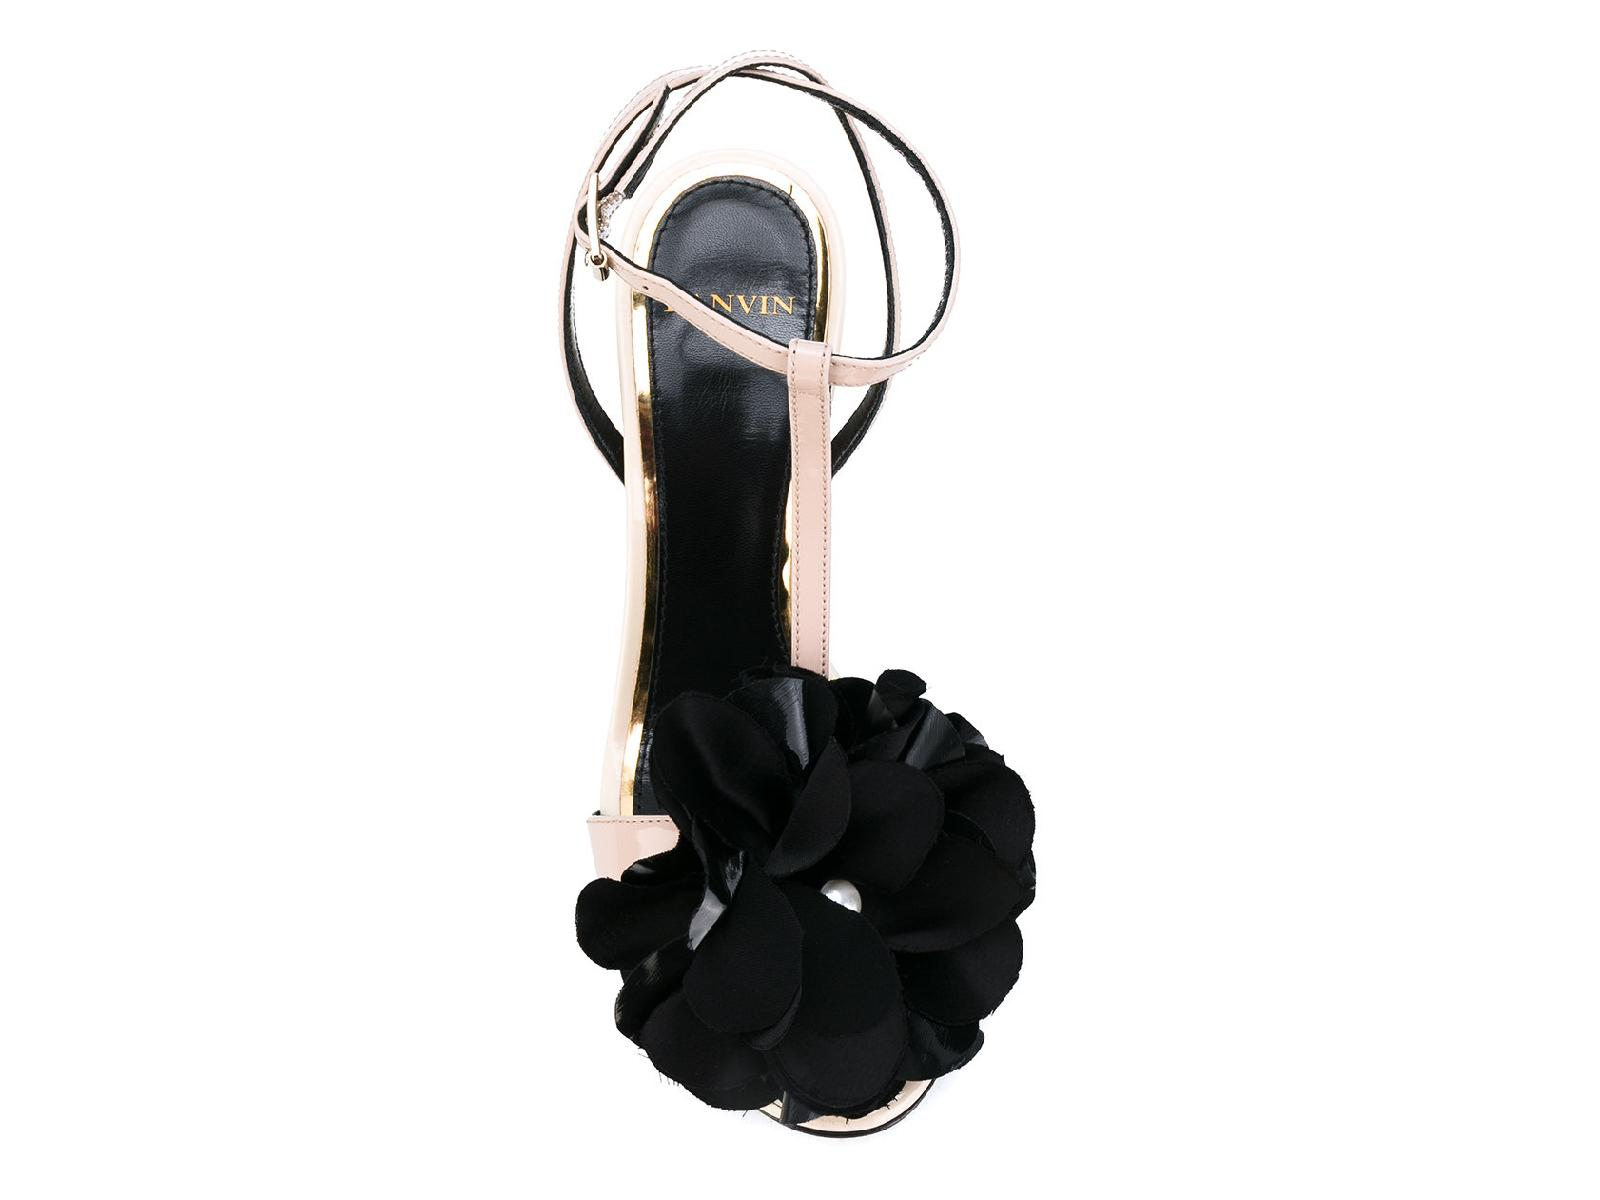 Lanvin-Women-039-s-high-stiletto-heels-sandals-in-Powder-Patent-Leather-ankle-straps thumbnail 8